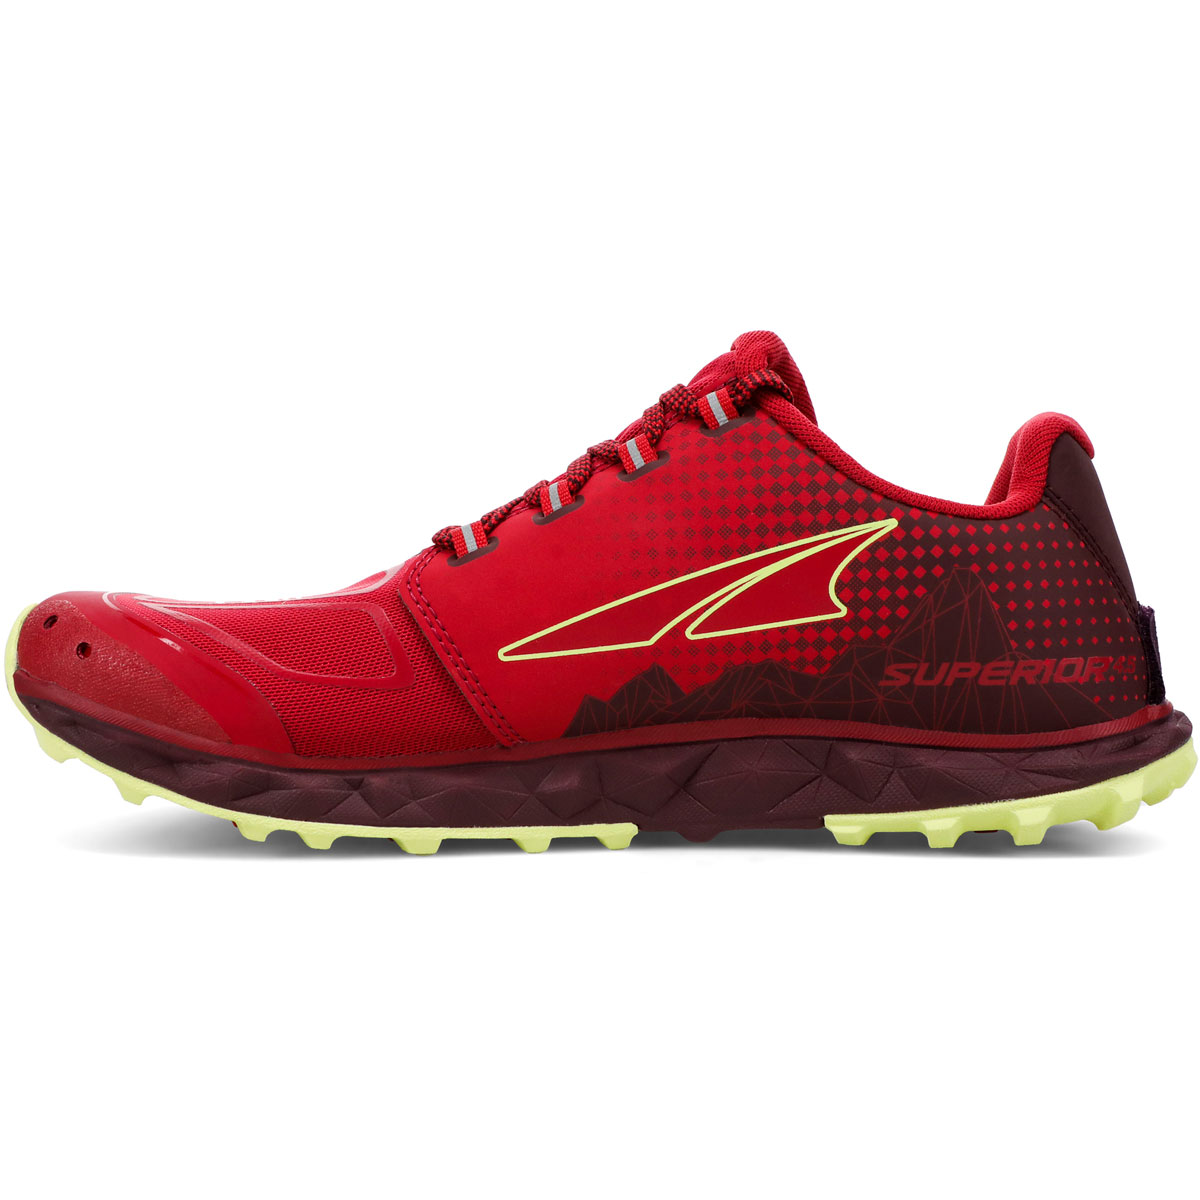 Women's Altra Superior 4.5 Trail Running Shoe - Color: Raspberry - Size: 5.5 - Width: Regular, Raspberry, large, image 2